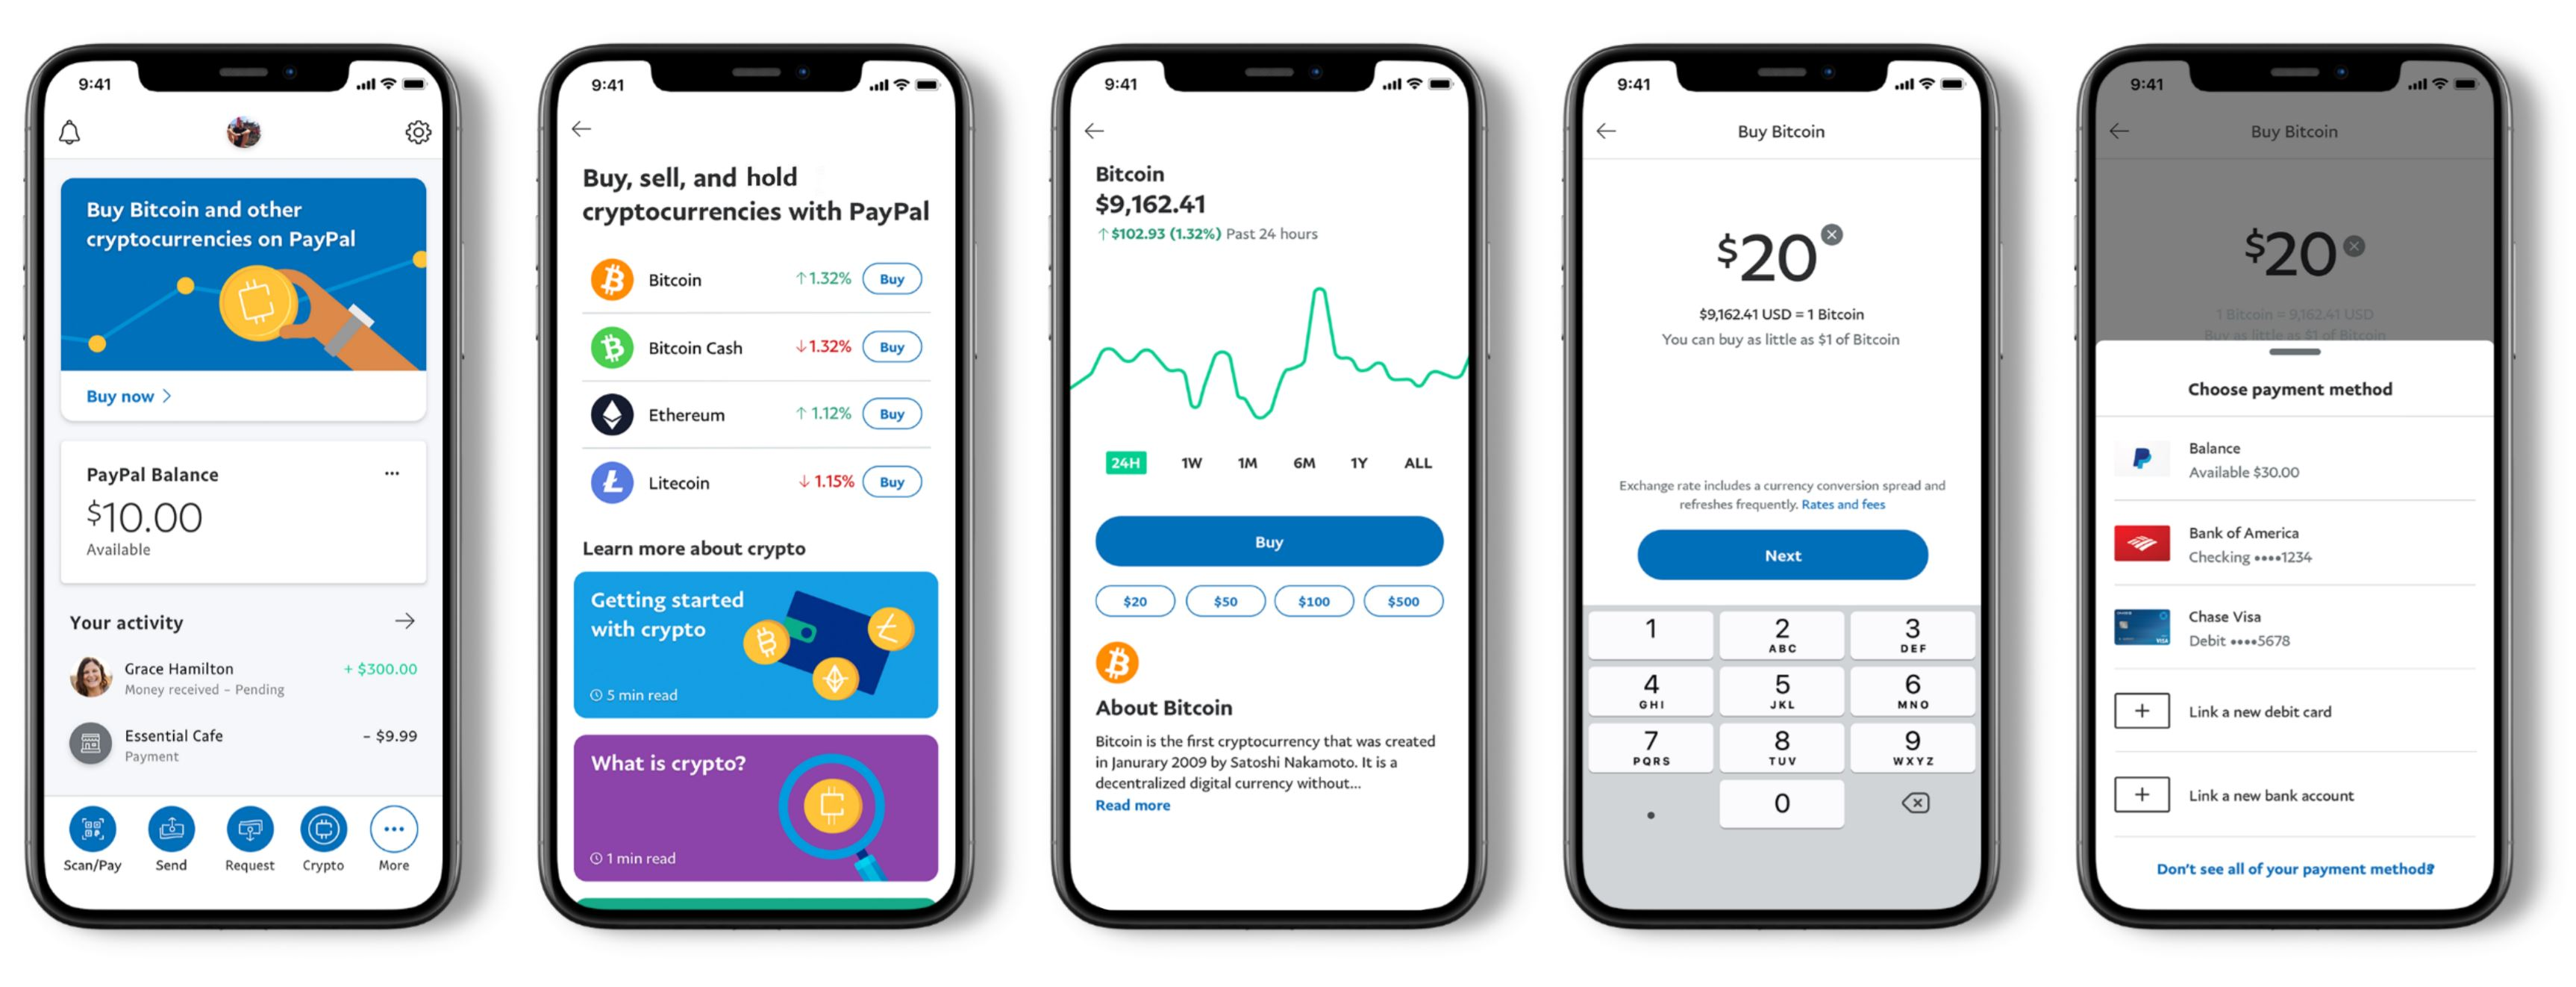 PayPal ups weekly limit on crypto purchases to $100K